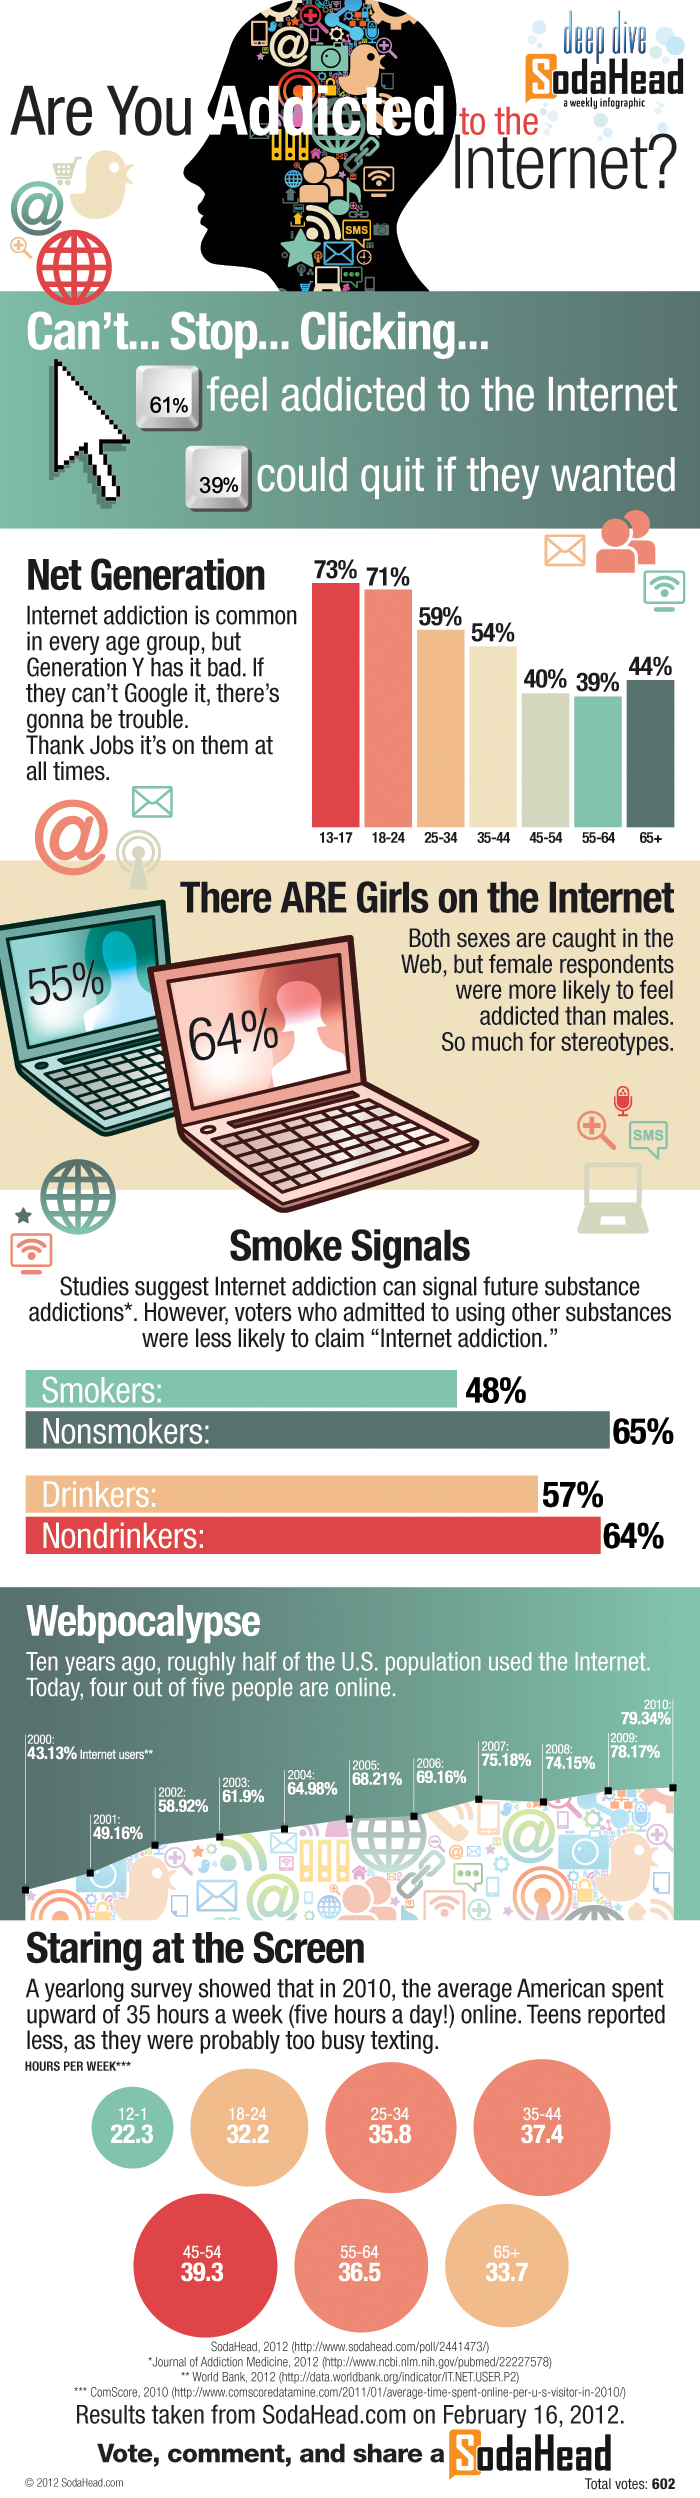 32 interesting internet addiction statistics com internet addiction trends